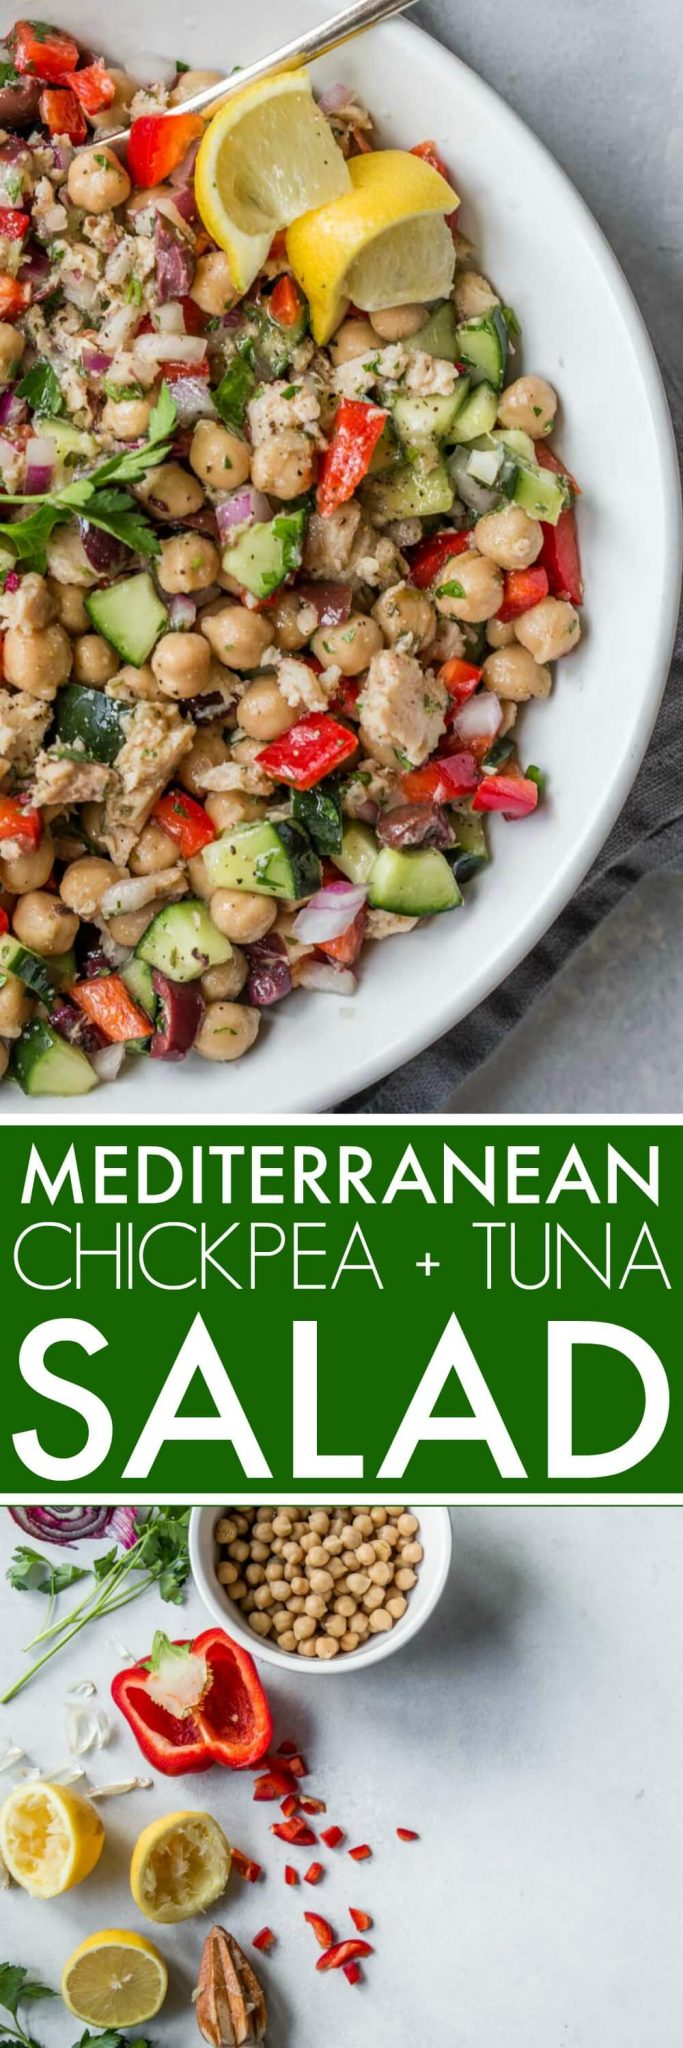 This Mediterranean Chickpea & Tuna Salad is the perfect dish for when you're trying to eat lighter but still want a delicious meal. #salad #chickpea #tuna #tunasalad #chickpeasalad #mediterraneansalad #healthylunch #healthysalad #